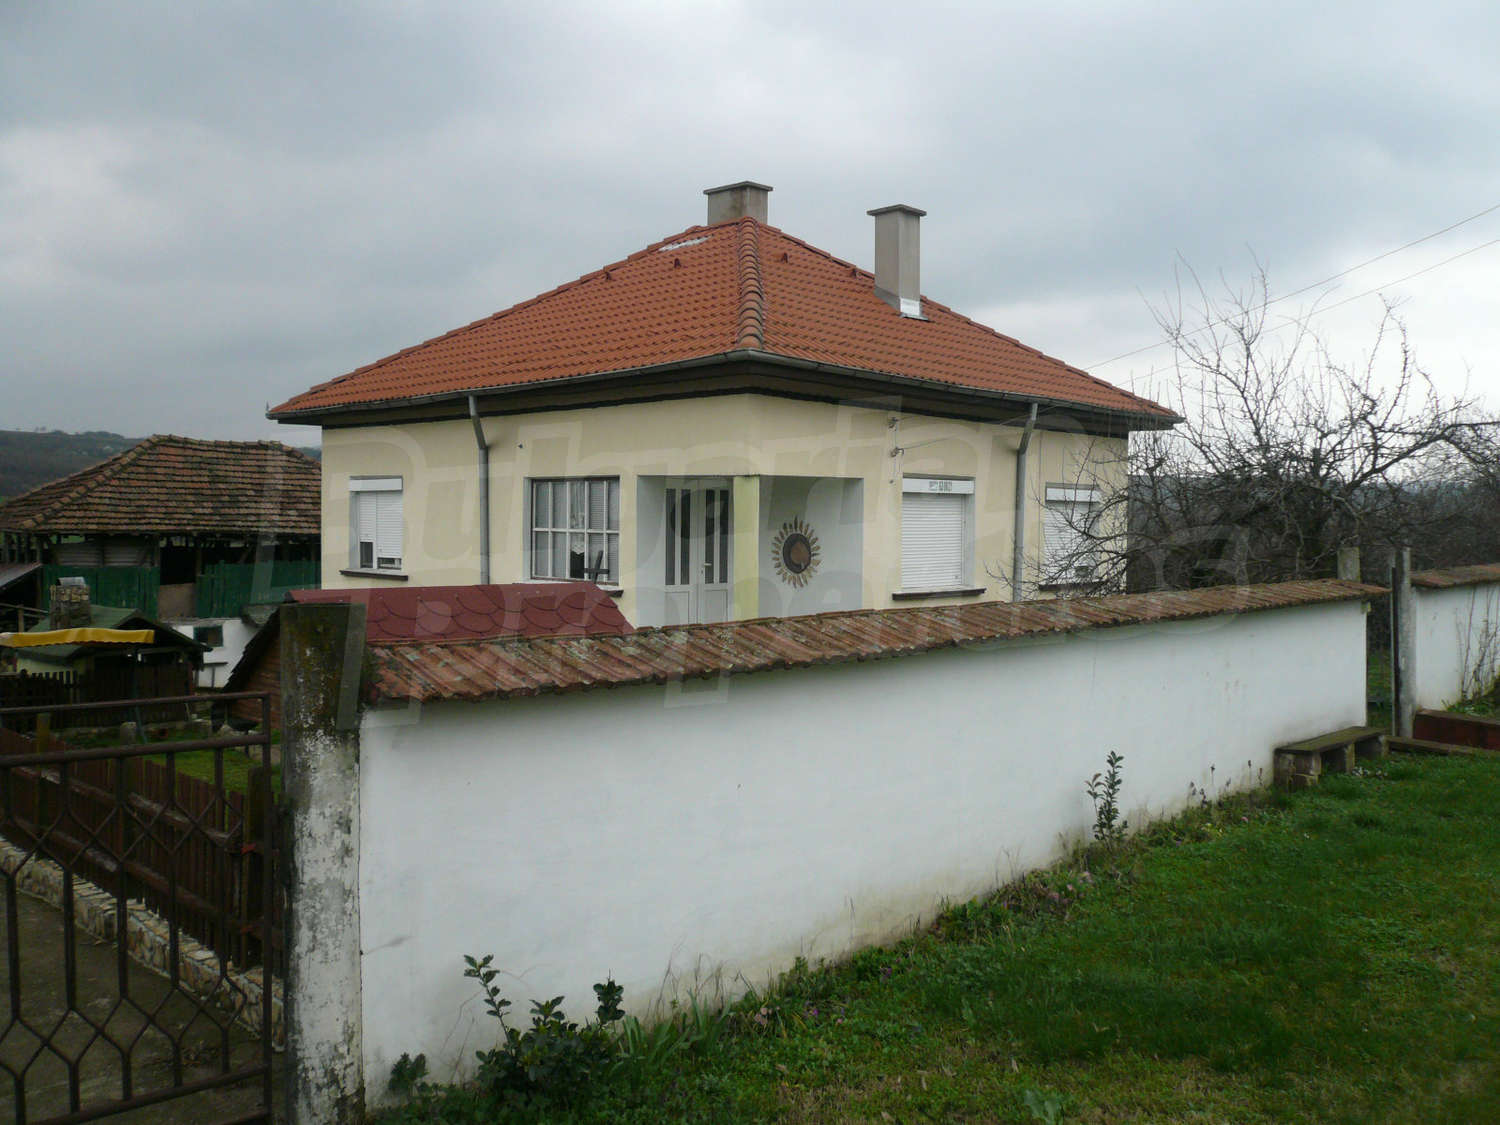 House for sale near vidin bulgaria nice house with for Big nice houses for sale